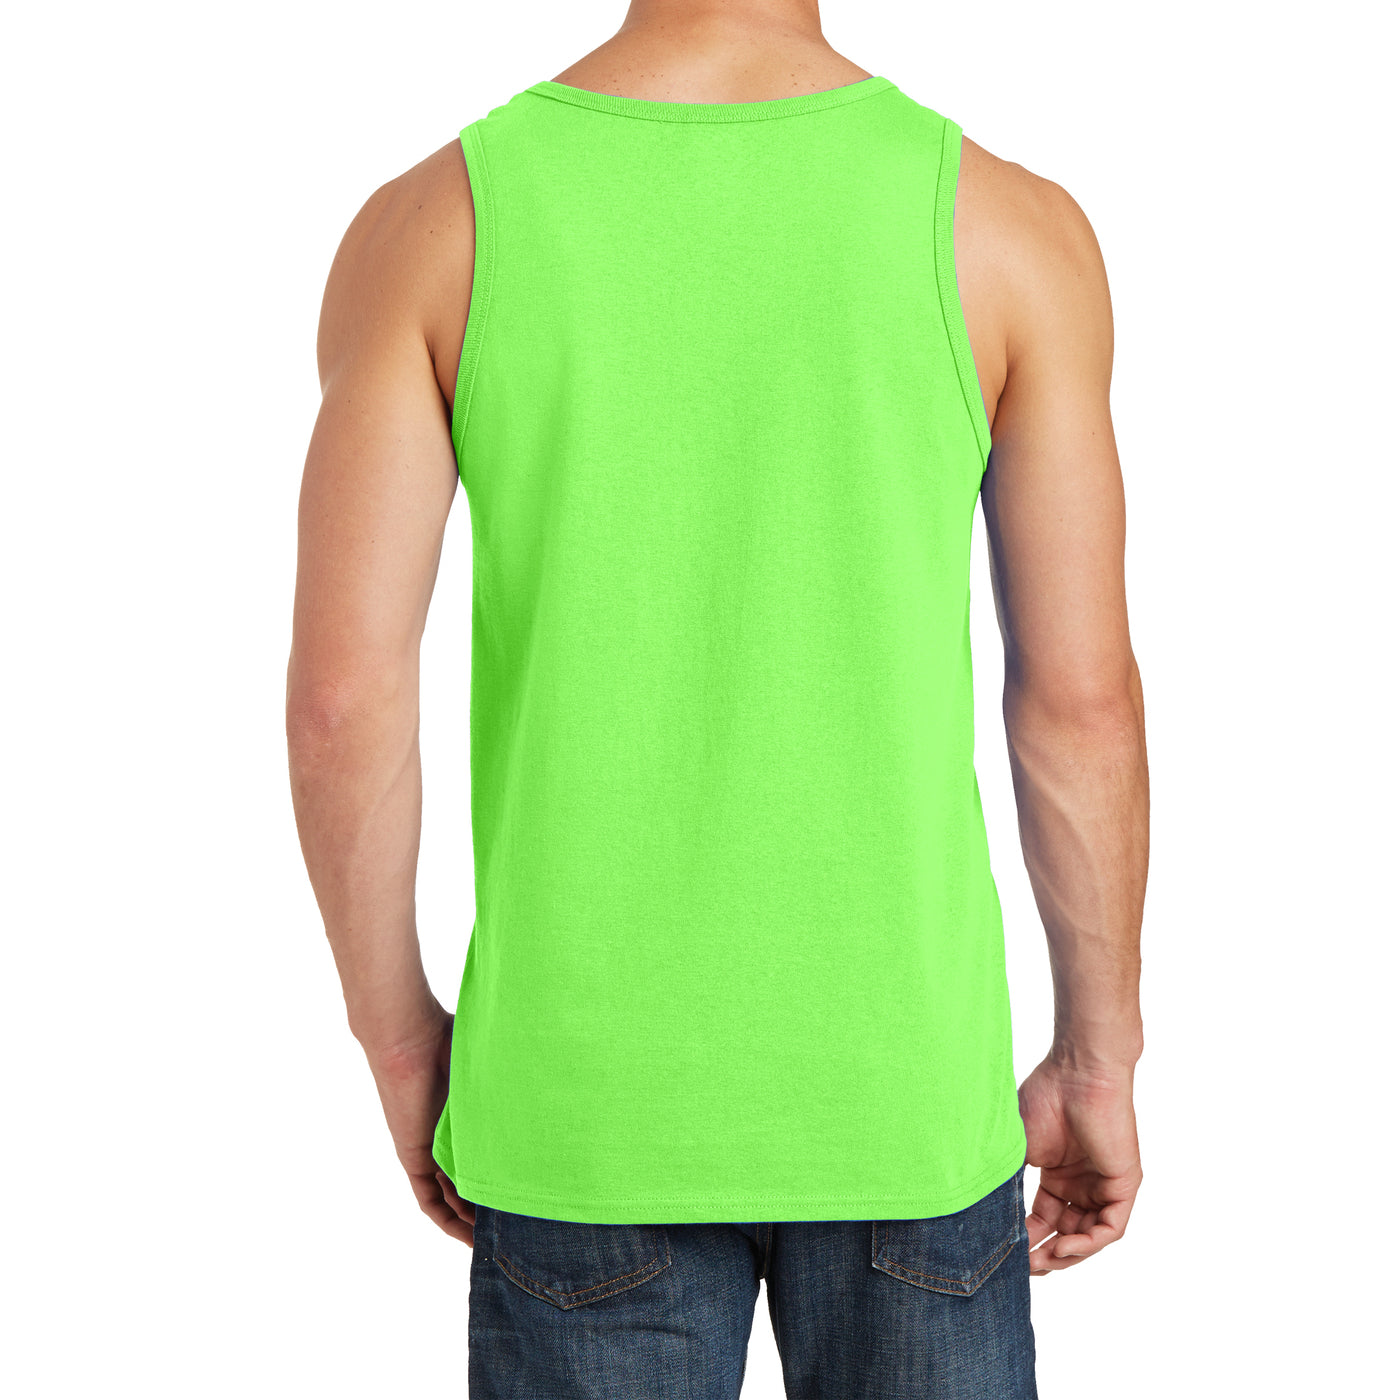 Men's Core Cotton Tank Top - Neon Green - Back